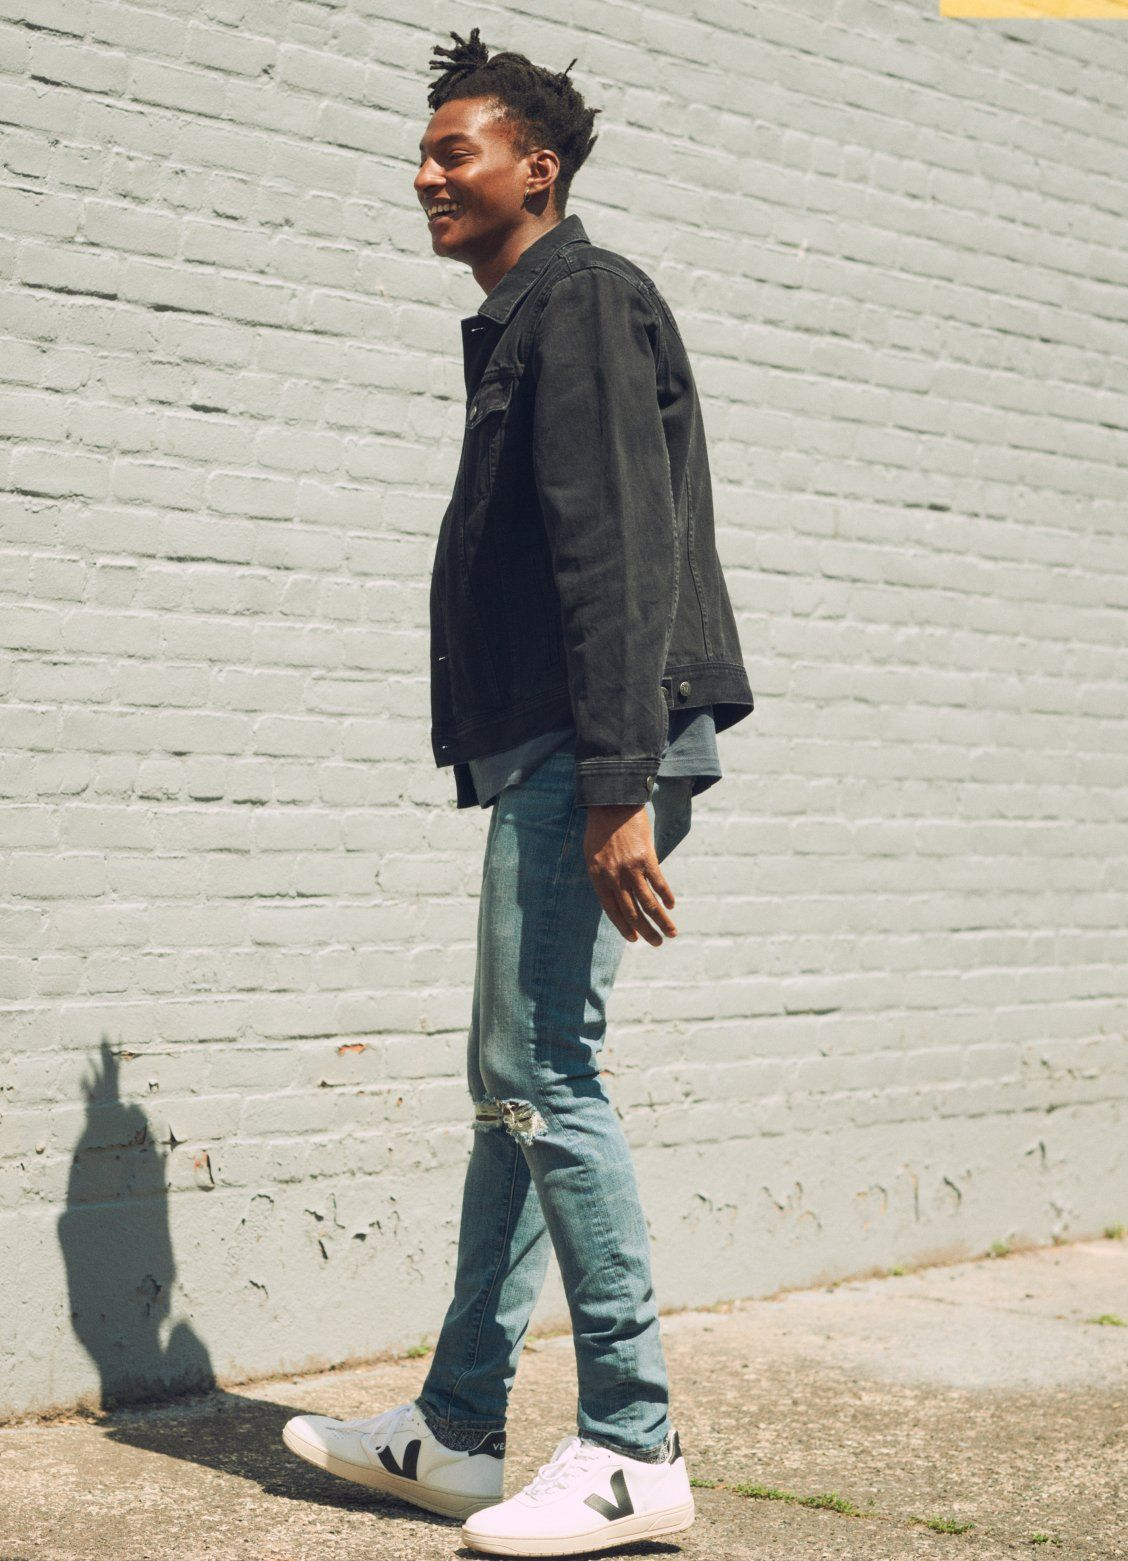 e04aa2037c madewell men s skinny jeans worn with classic denim jacket + veja sneakers.